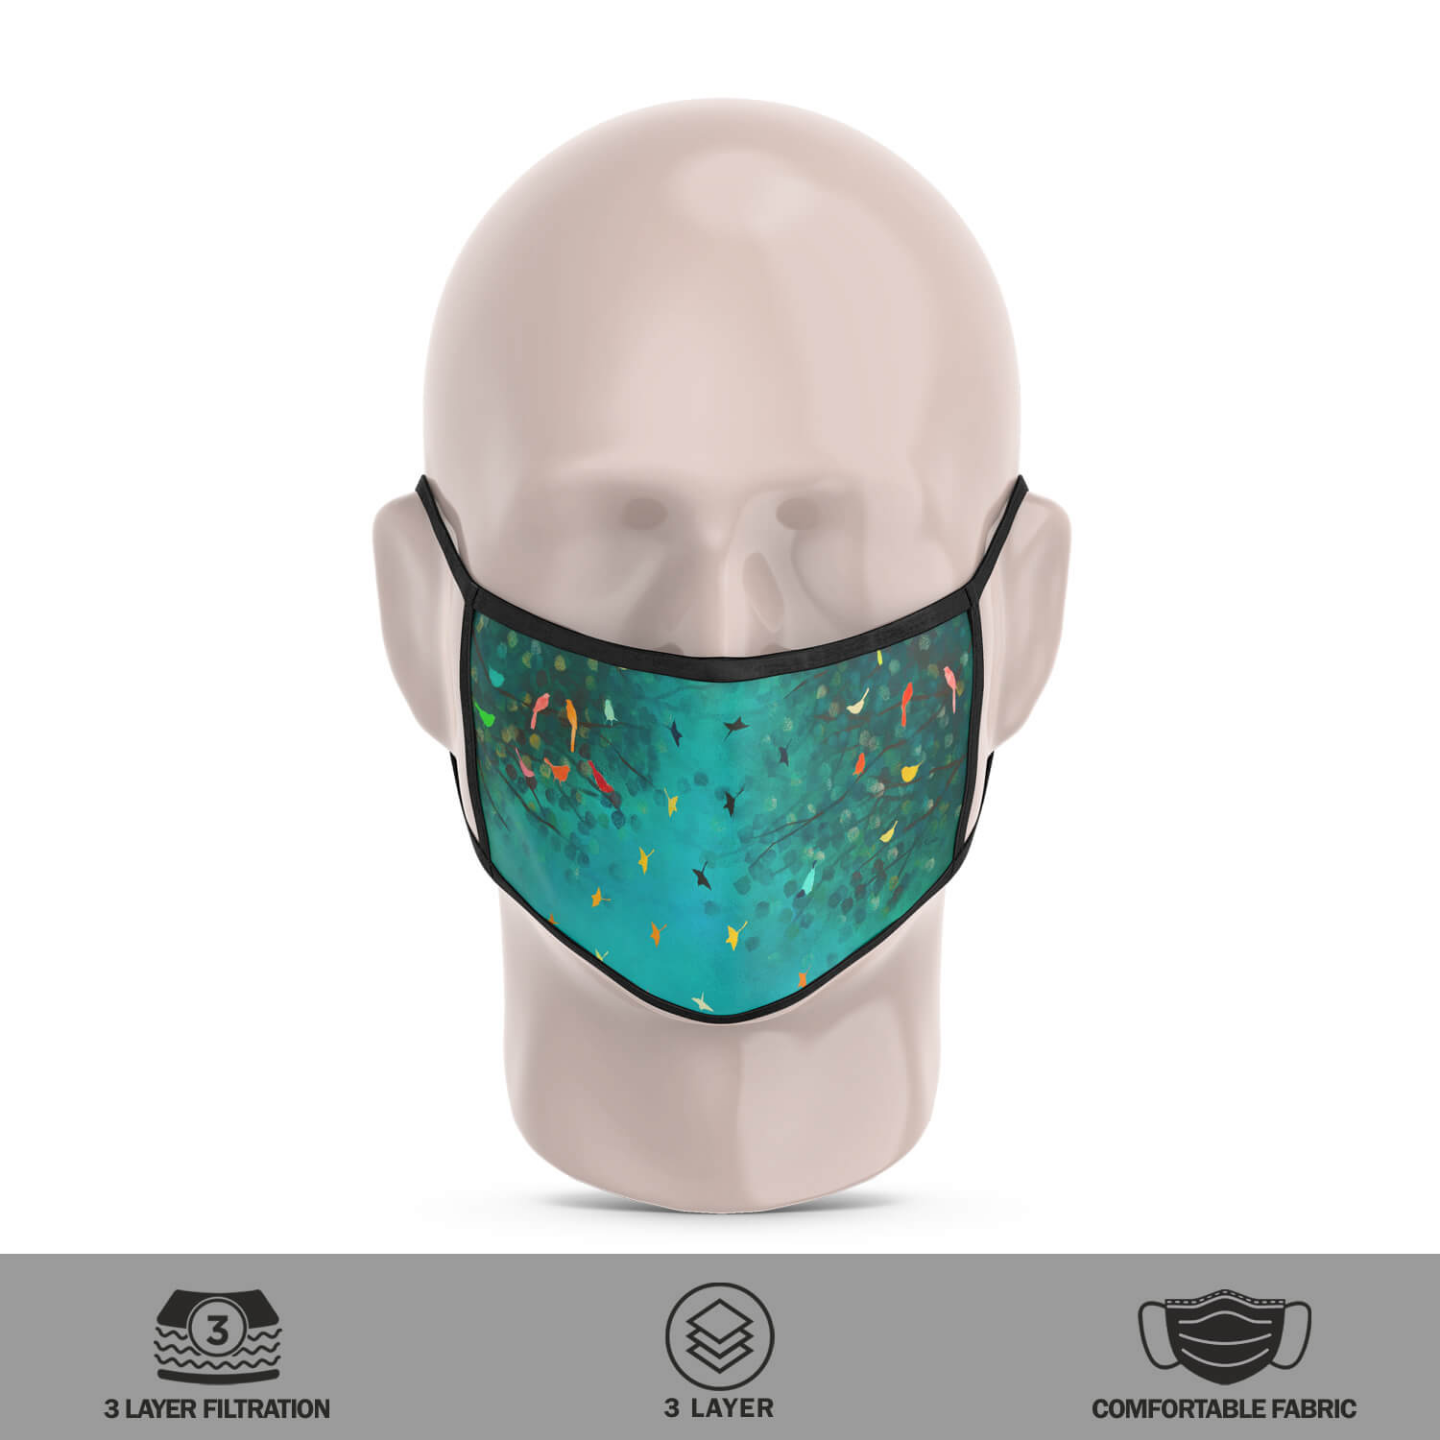 Sky of Stories Reusable Face Mask - Priyanka Waghela